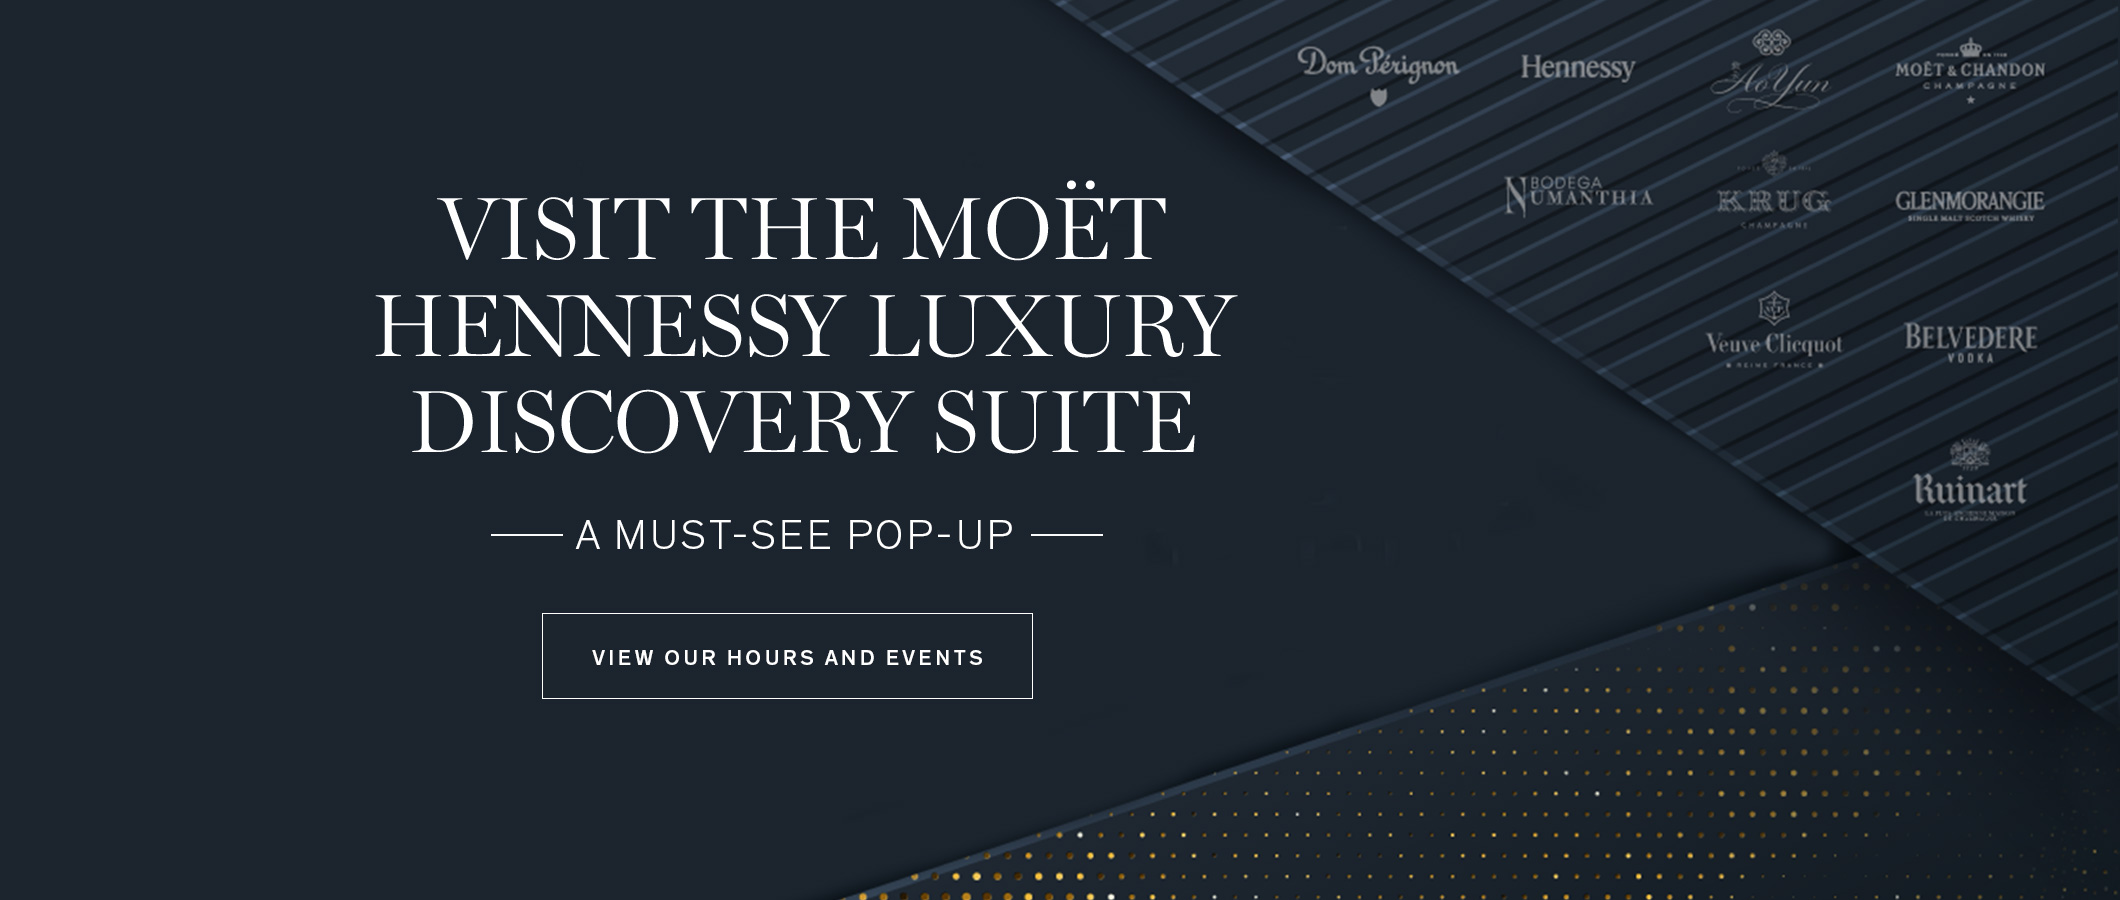 Visit the Moët Hennessy Luxury Discovery Suite.  A Must-See Pop-Up. VIEW OUR HOURS AND EVENTS